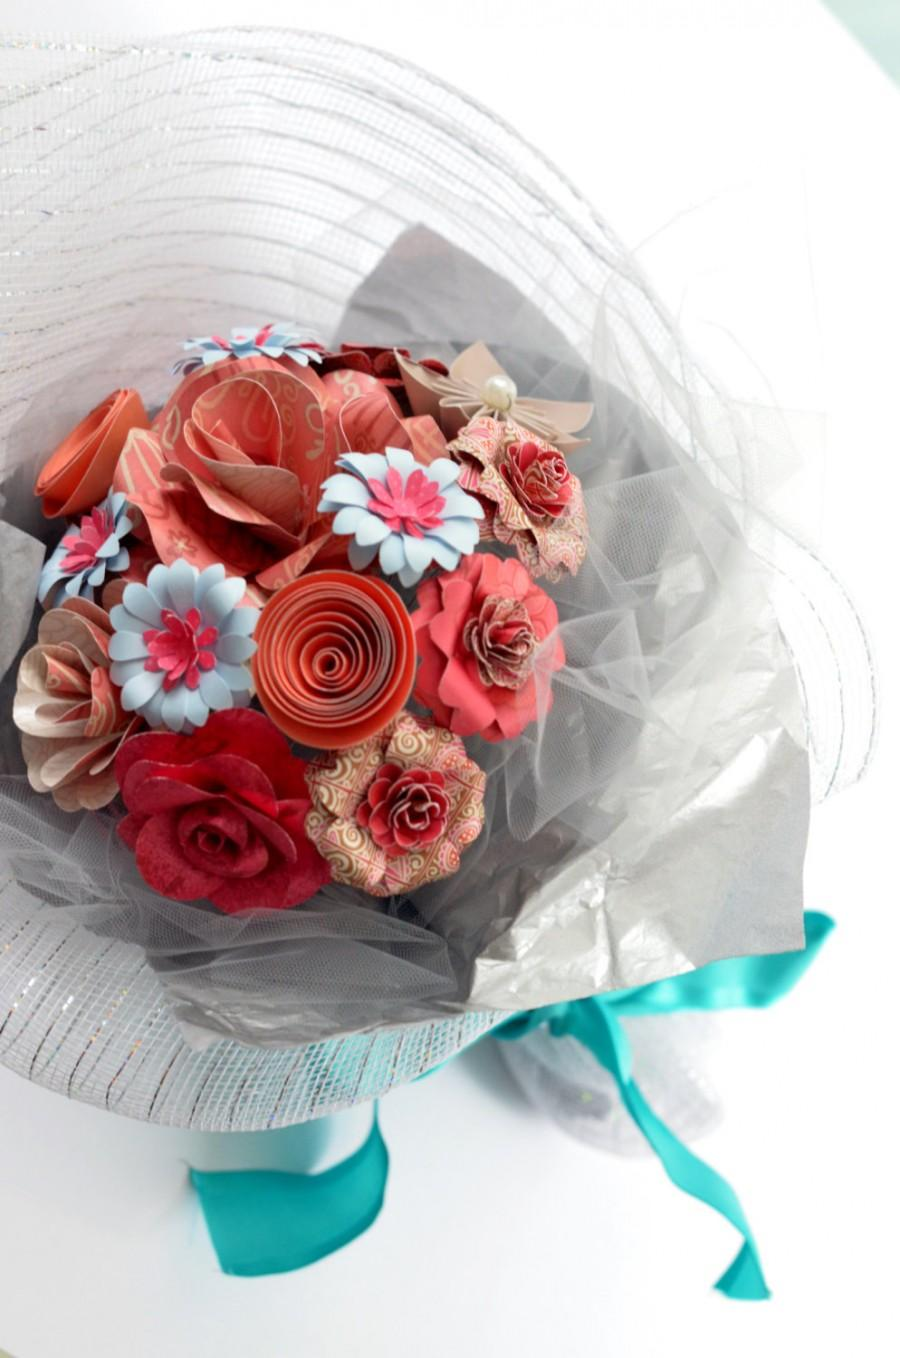 Handmade Paper Flower Bouquet In Gift Wrap - Pink #2427543 - Weddbook